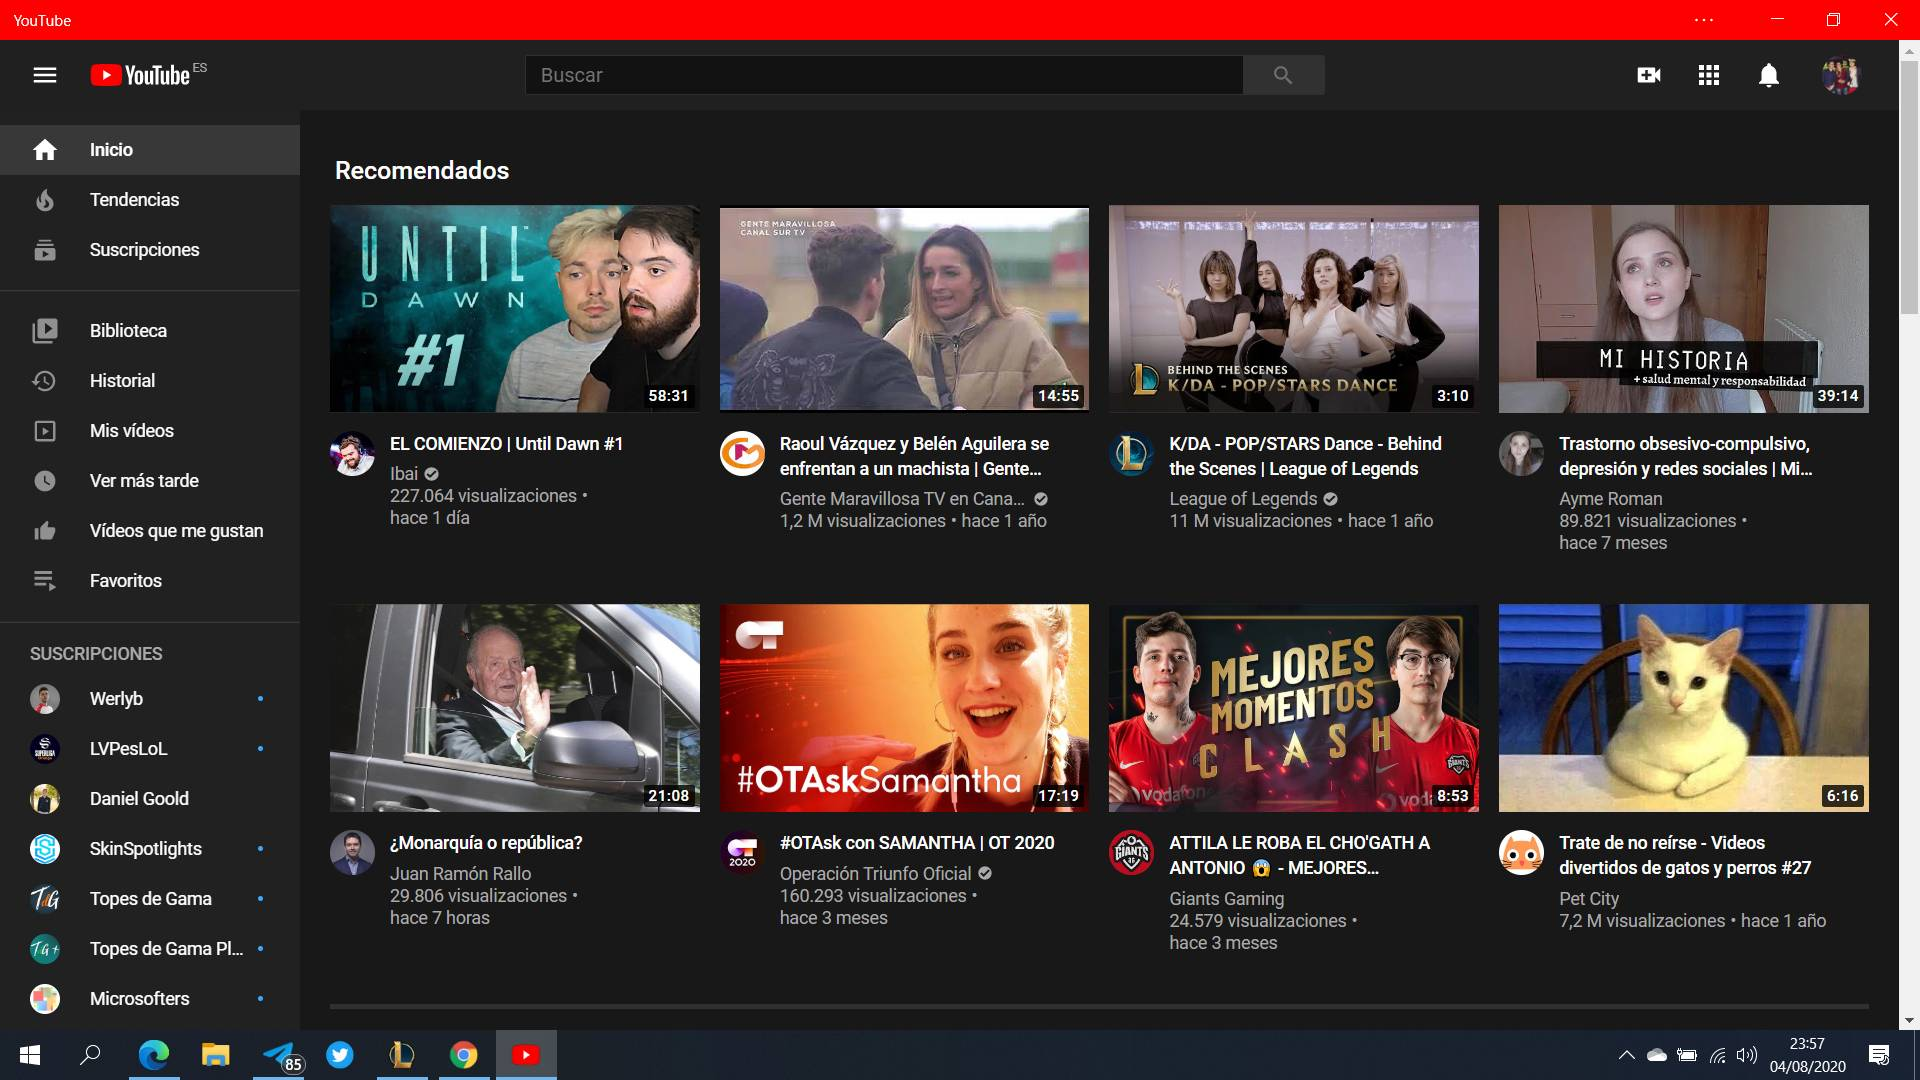 Aplicación web de YouTube en Windows 10